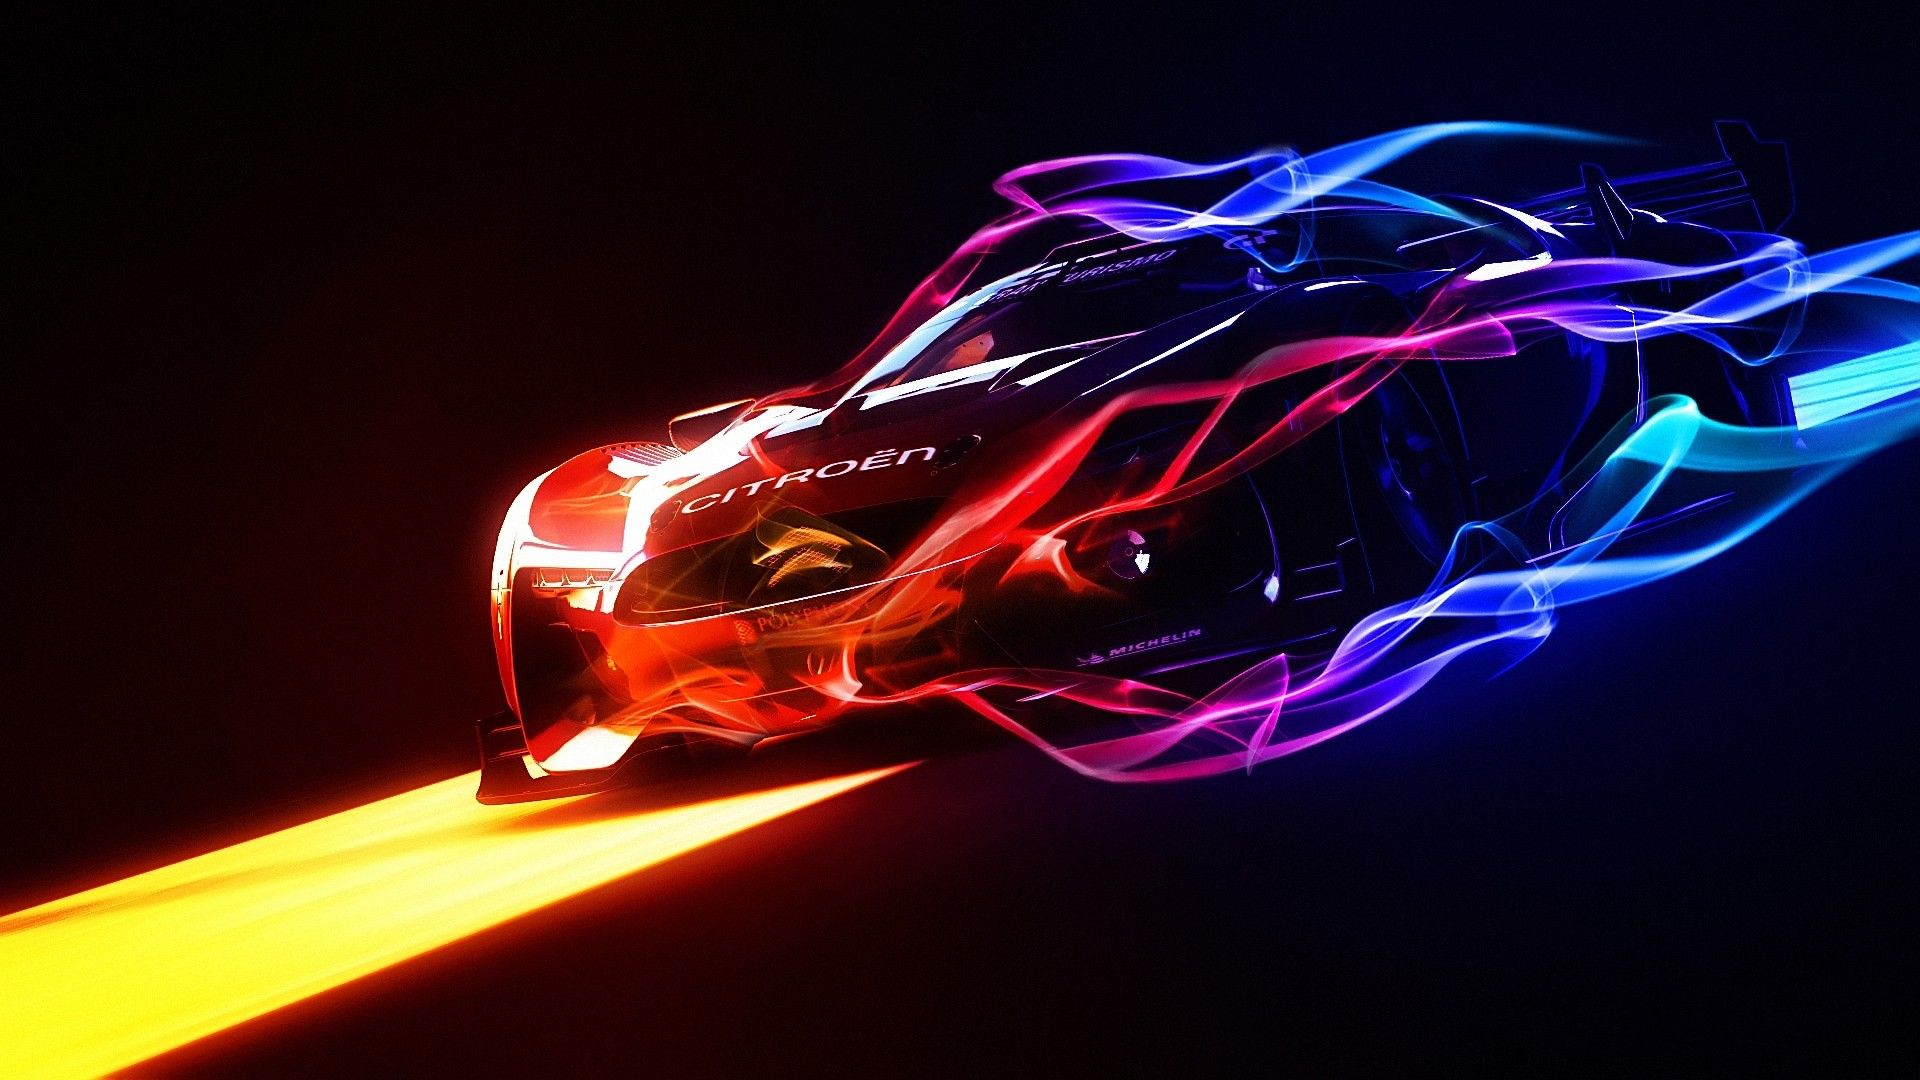 But the reason why isn't necessarily obvious. Abstract Car Wallpapers Wallpaperboat